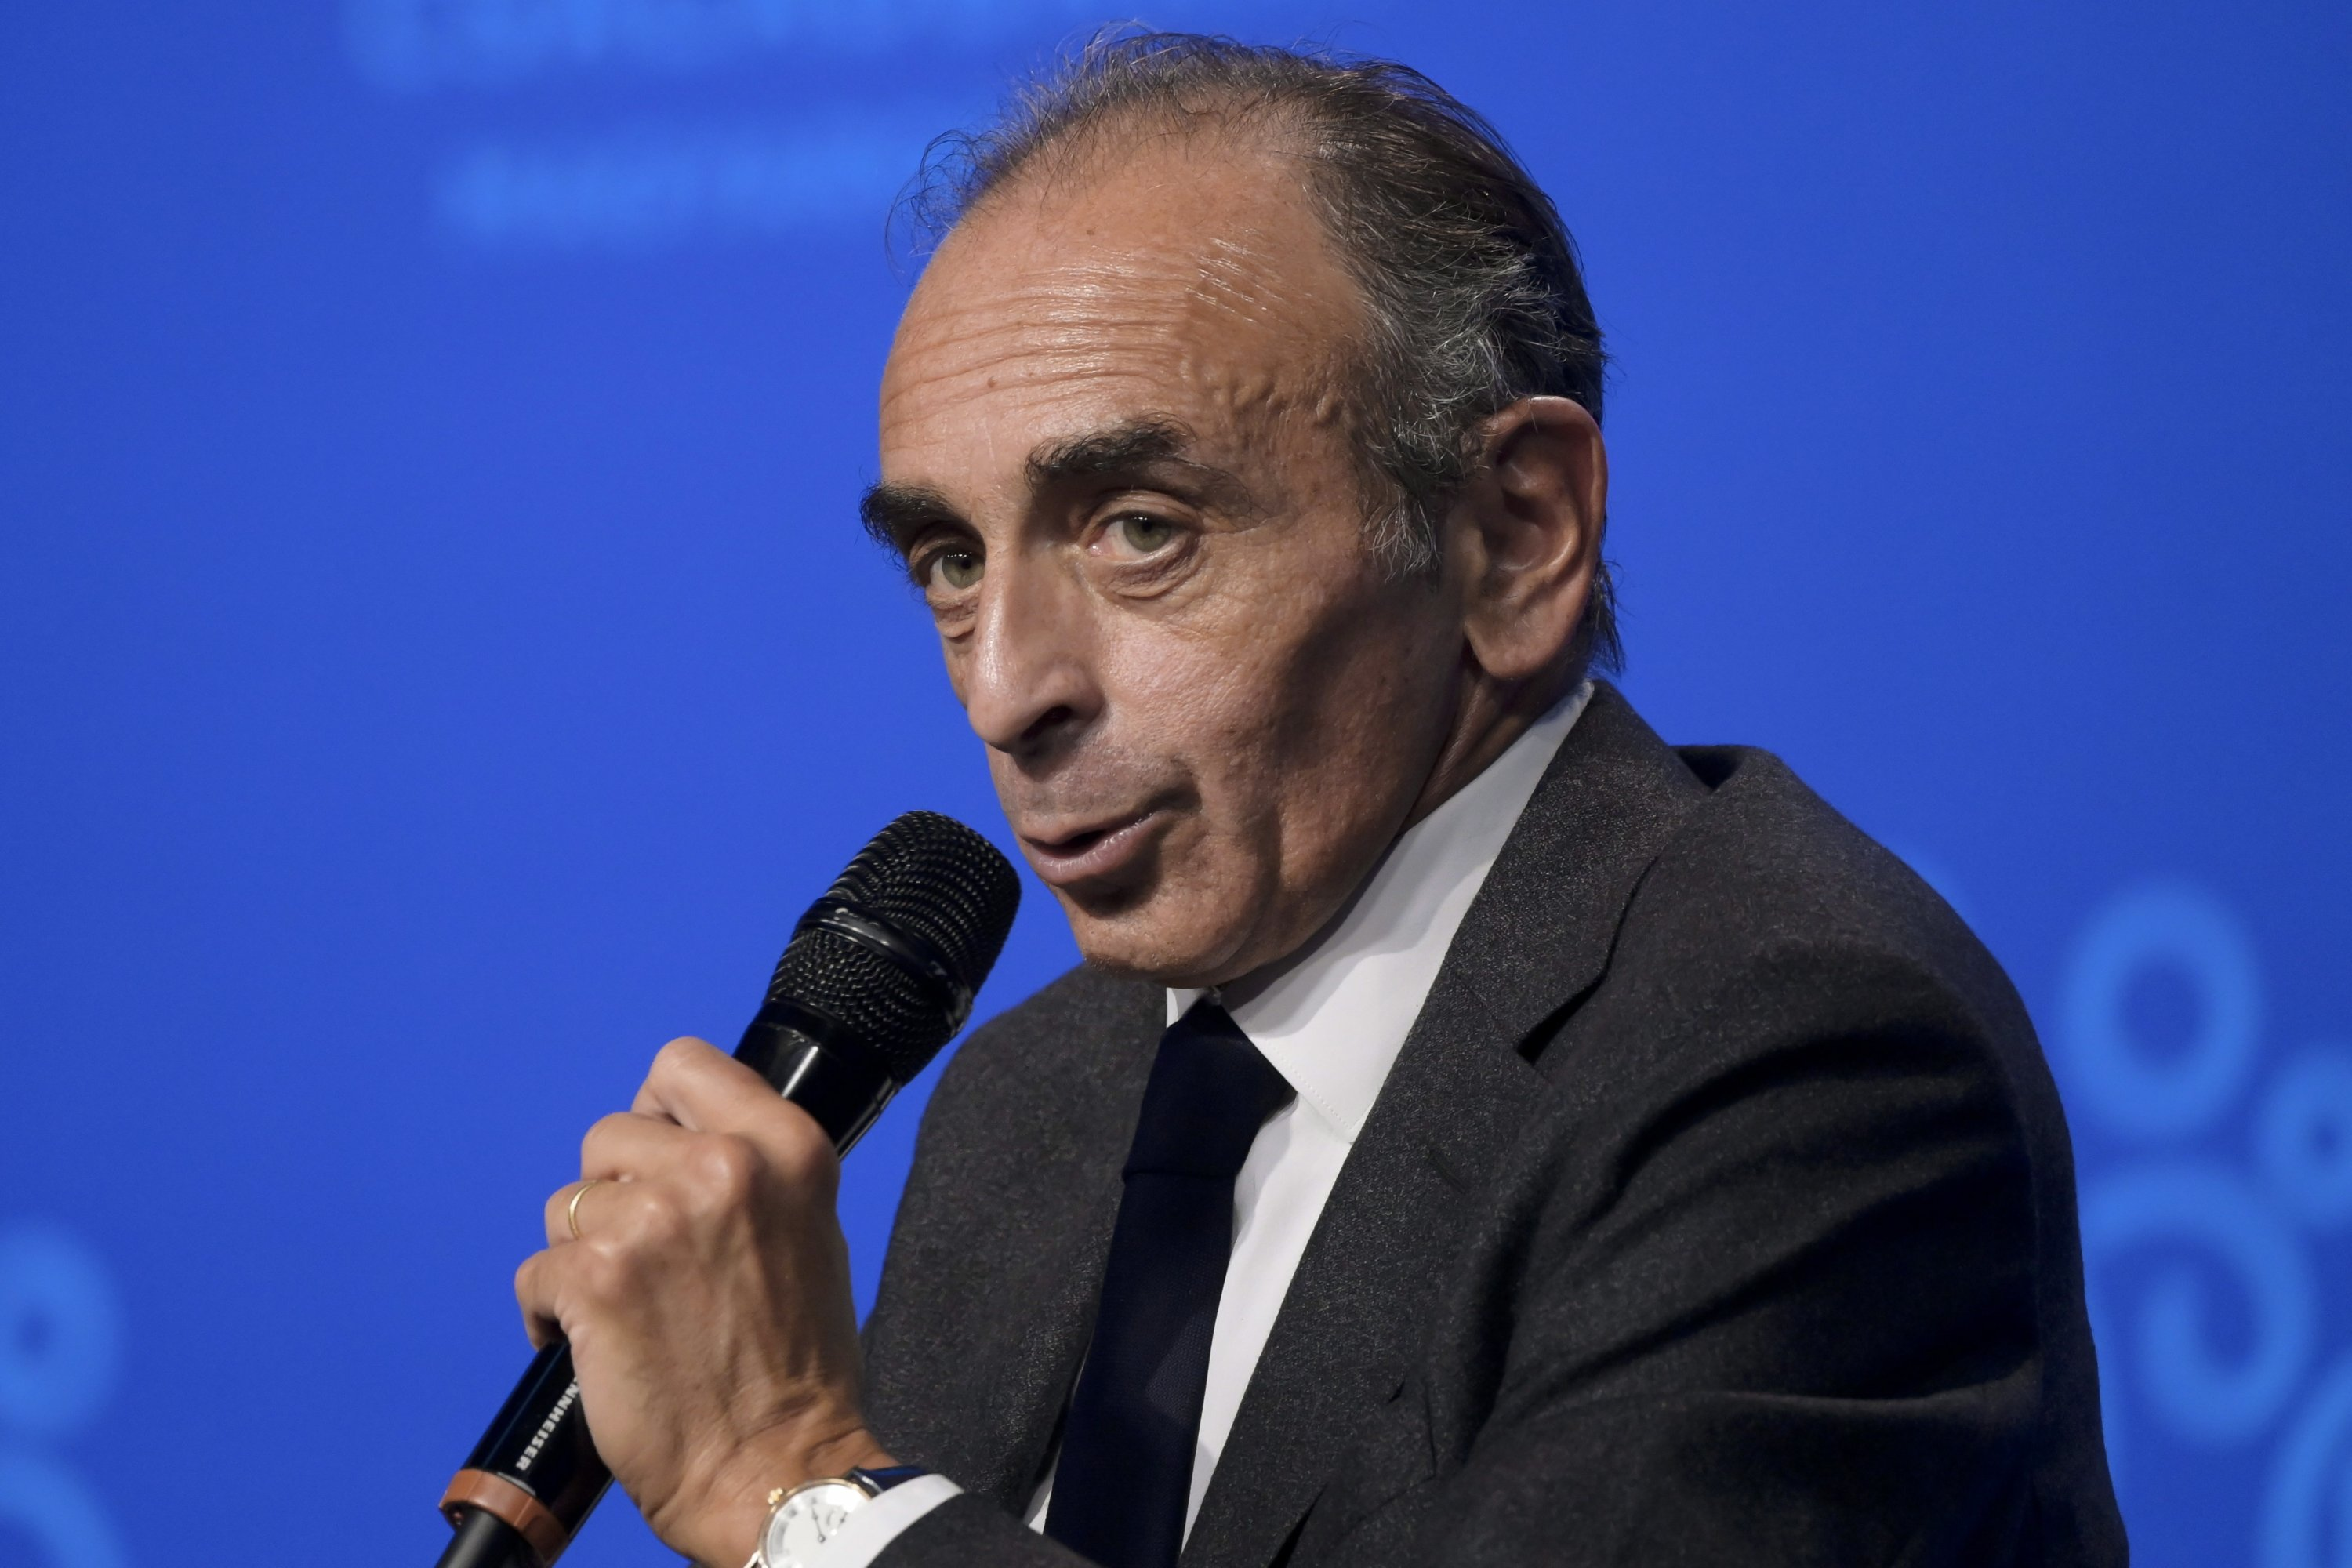 French far-right polemicist, essayist, political journalist and writer Eric Zemmour delivers his speech during the 4th Budapest Demographic Summit in Budapest, Hungary, Sept. 24, 2021. (EPA Photo)